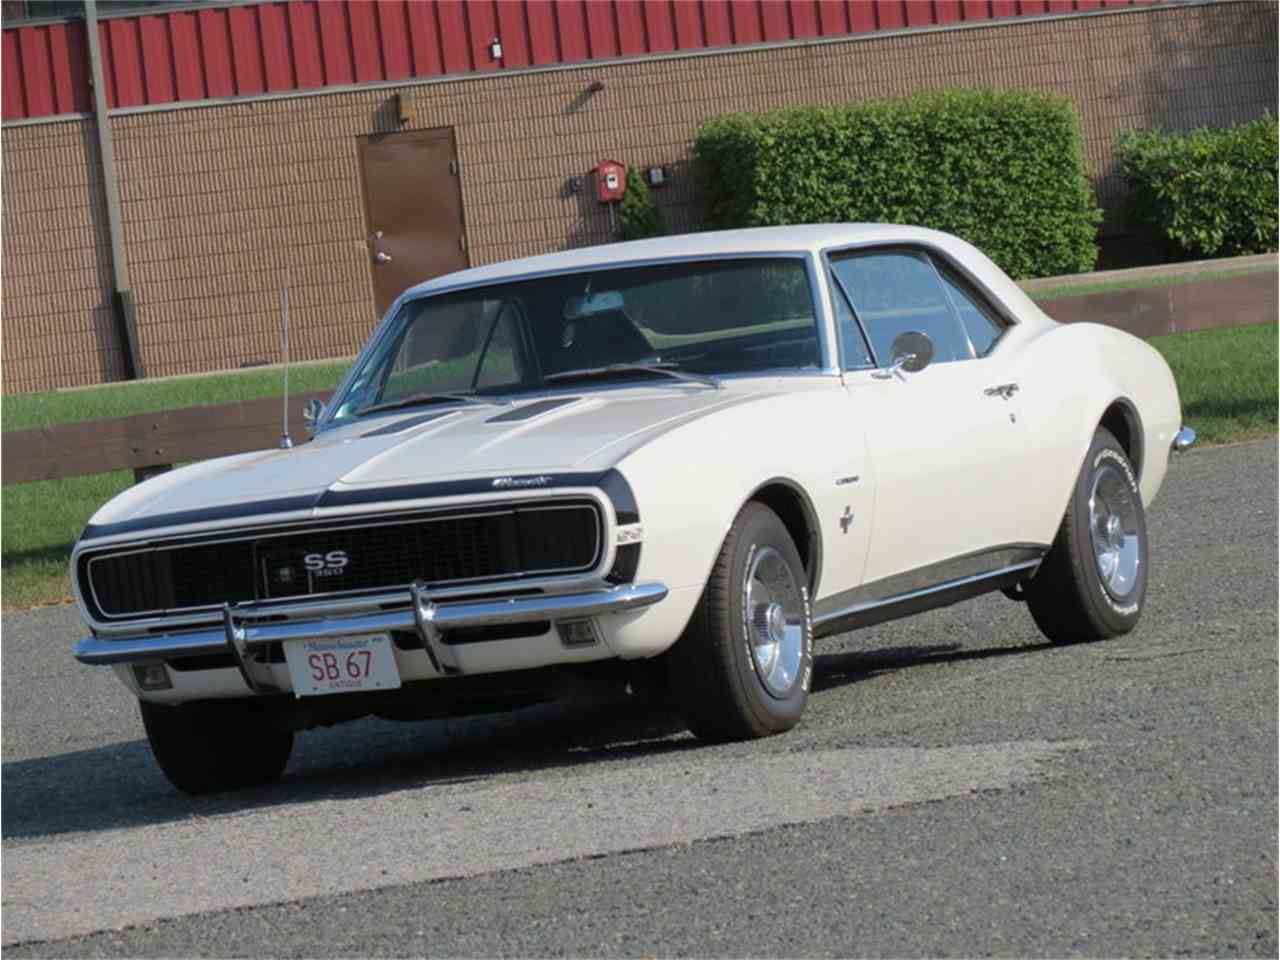 camaro 1967 ss rs chevrolet cc 67 massachusetts forums vehicles similar andover north classiccars